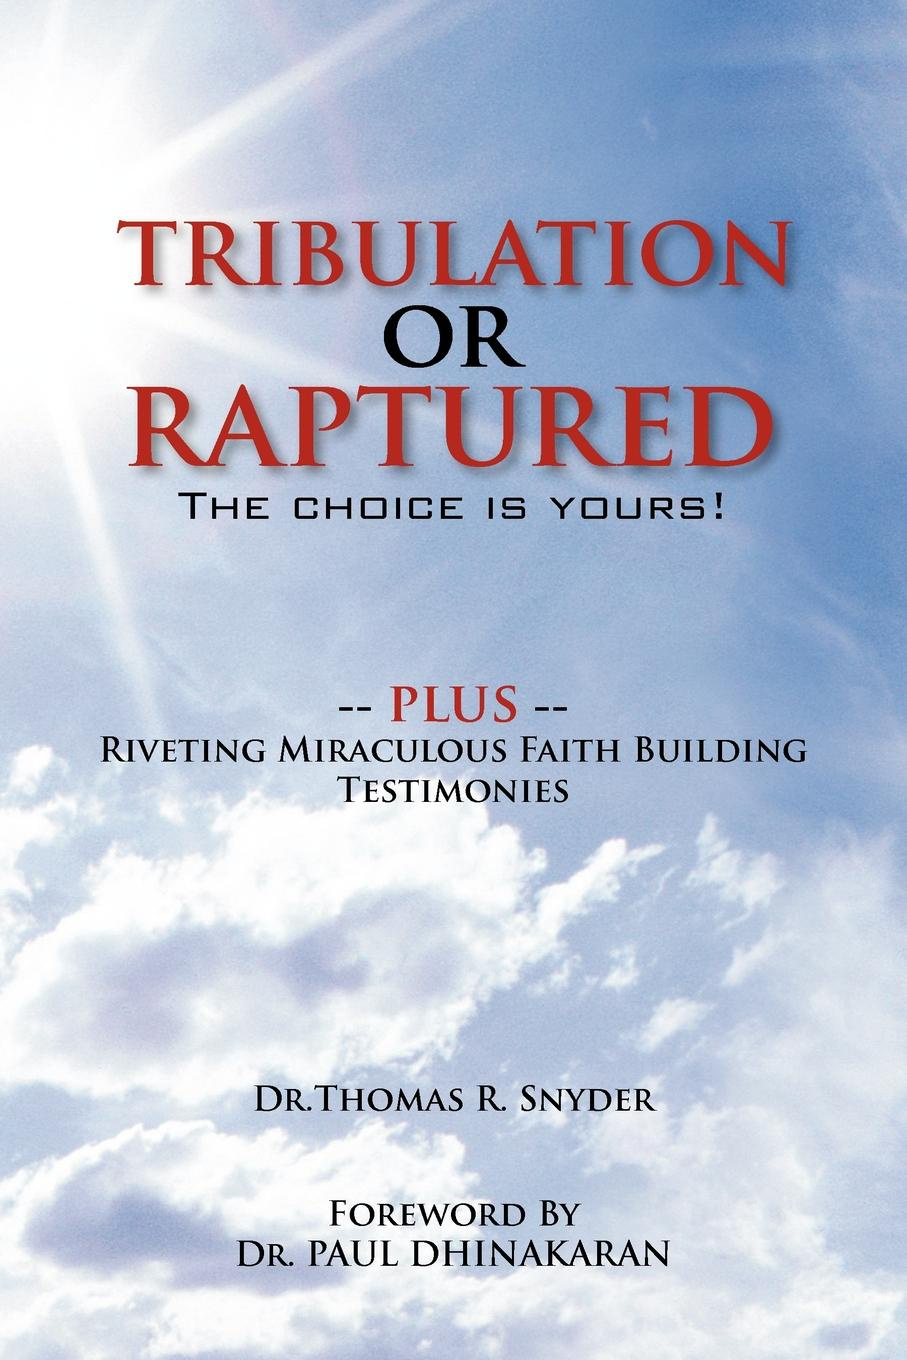 где купить Thomas R. Snyder, Dr Thomas R. Snyder Tribulation or Raptured. The Choice Is Yours! по лучшей цене